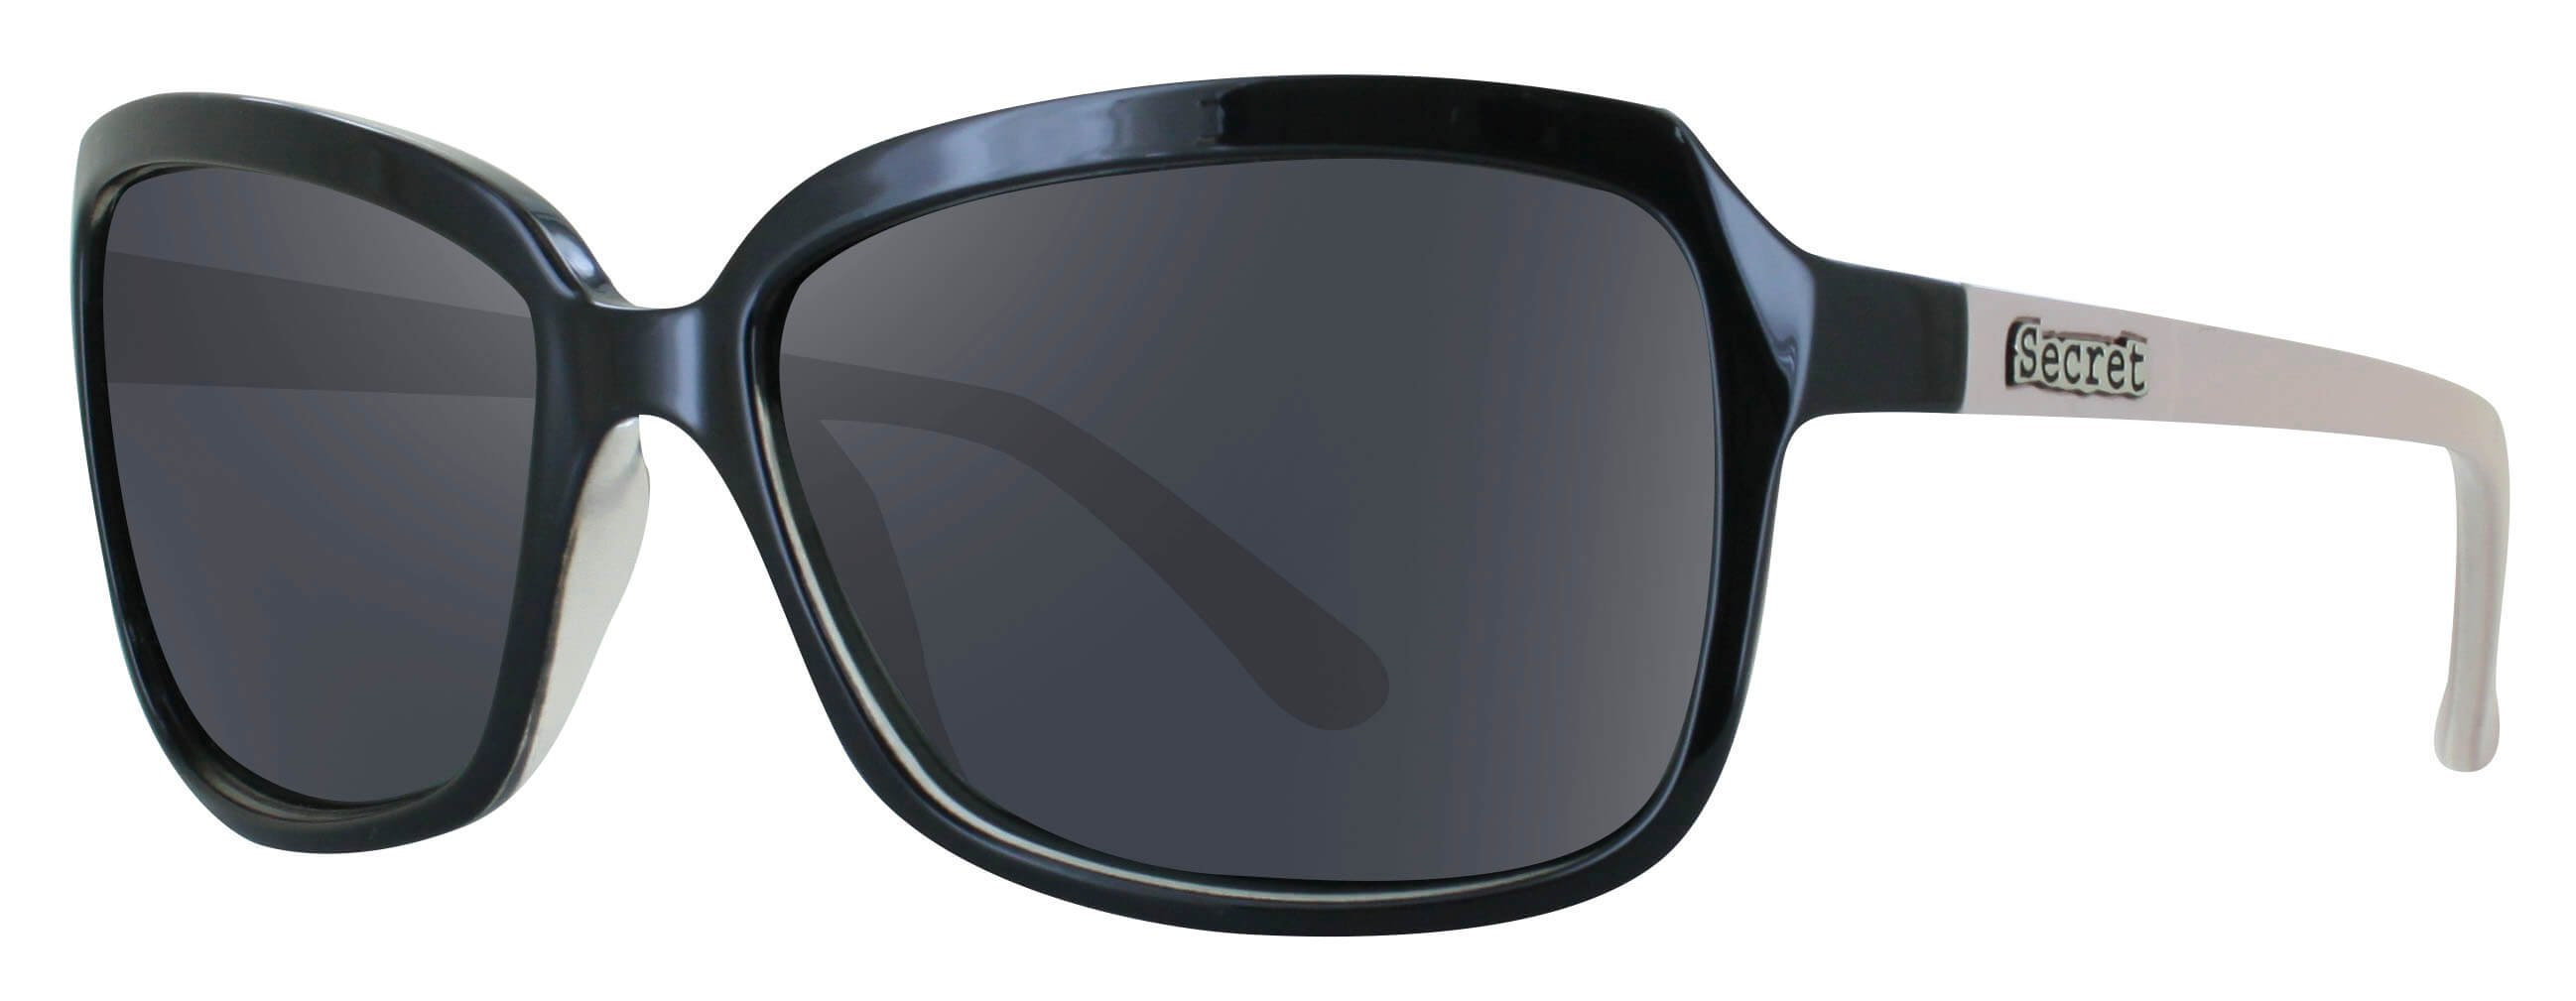 ÓC SECRET PETIT BLACK/NUDE / POLARIZED GRAY